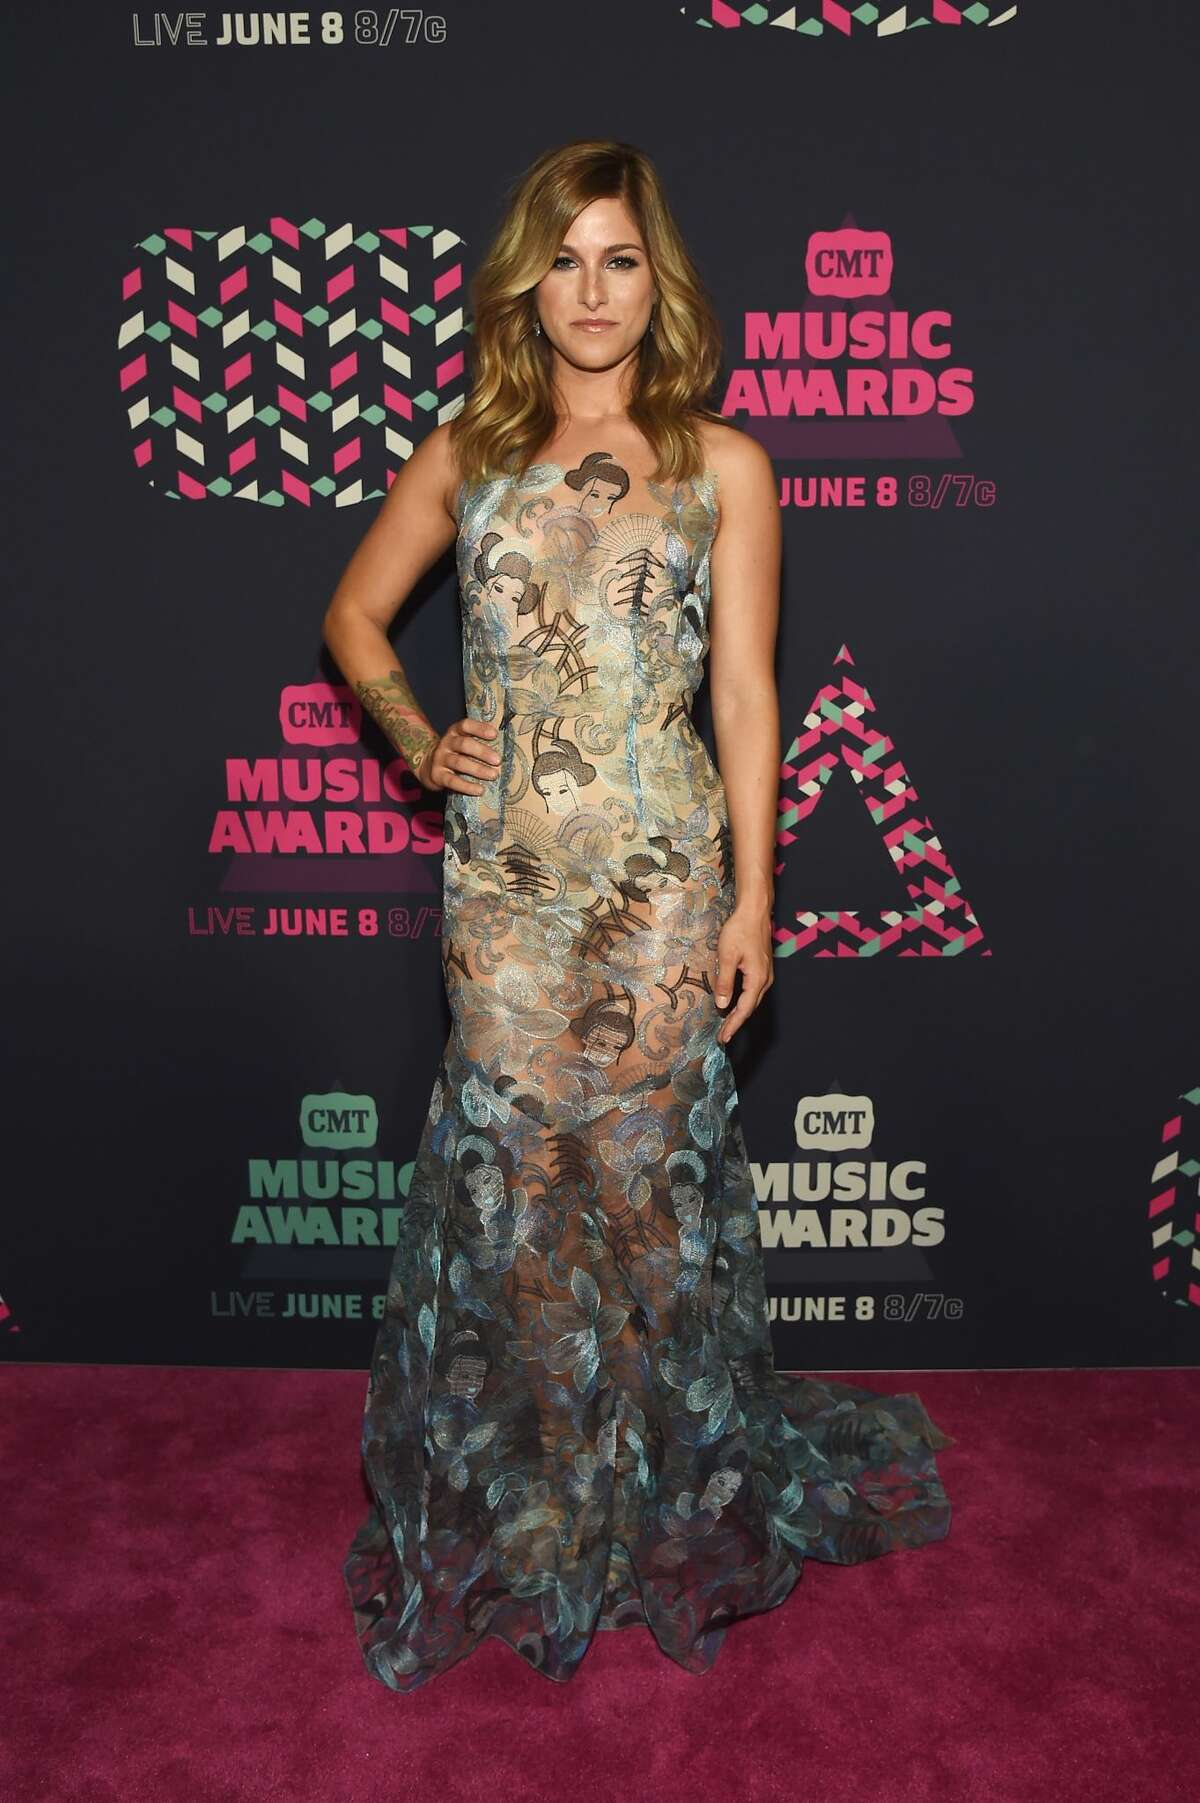 Best: Cassadee Pope A most intriguing naked dress, and the only one we saw on this red carpet.